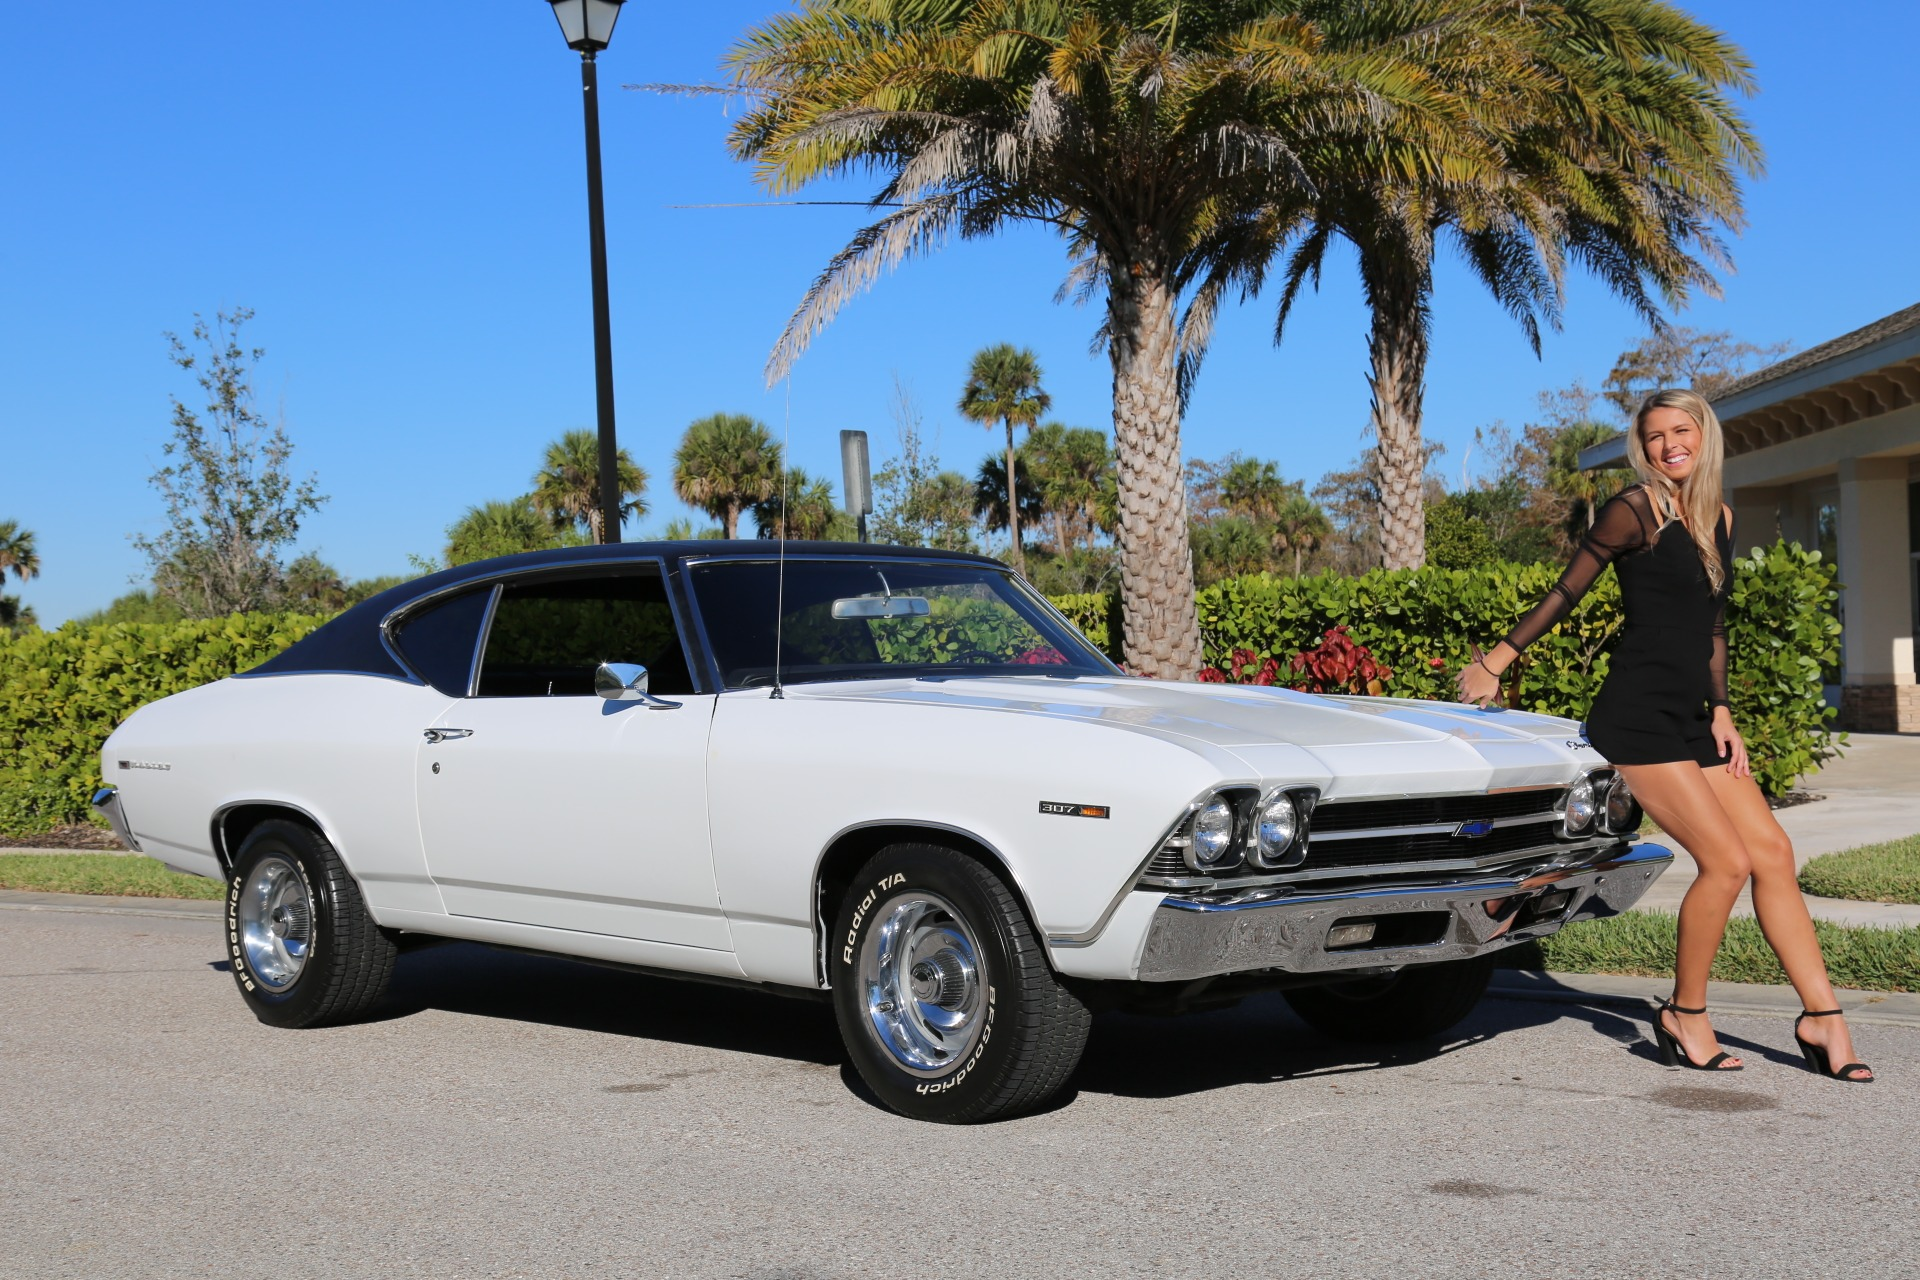 Used 1969 Chevy Chevelle V8 Auto for sale $27,000 at Muscle Cars for Sale Inc. in Fort Myers FL 33912 1